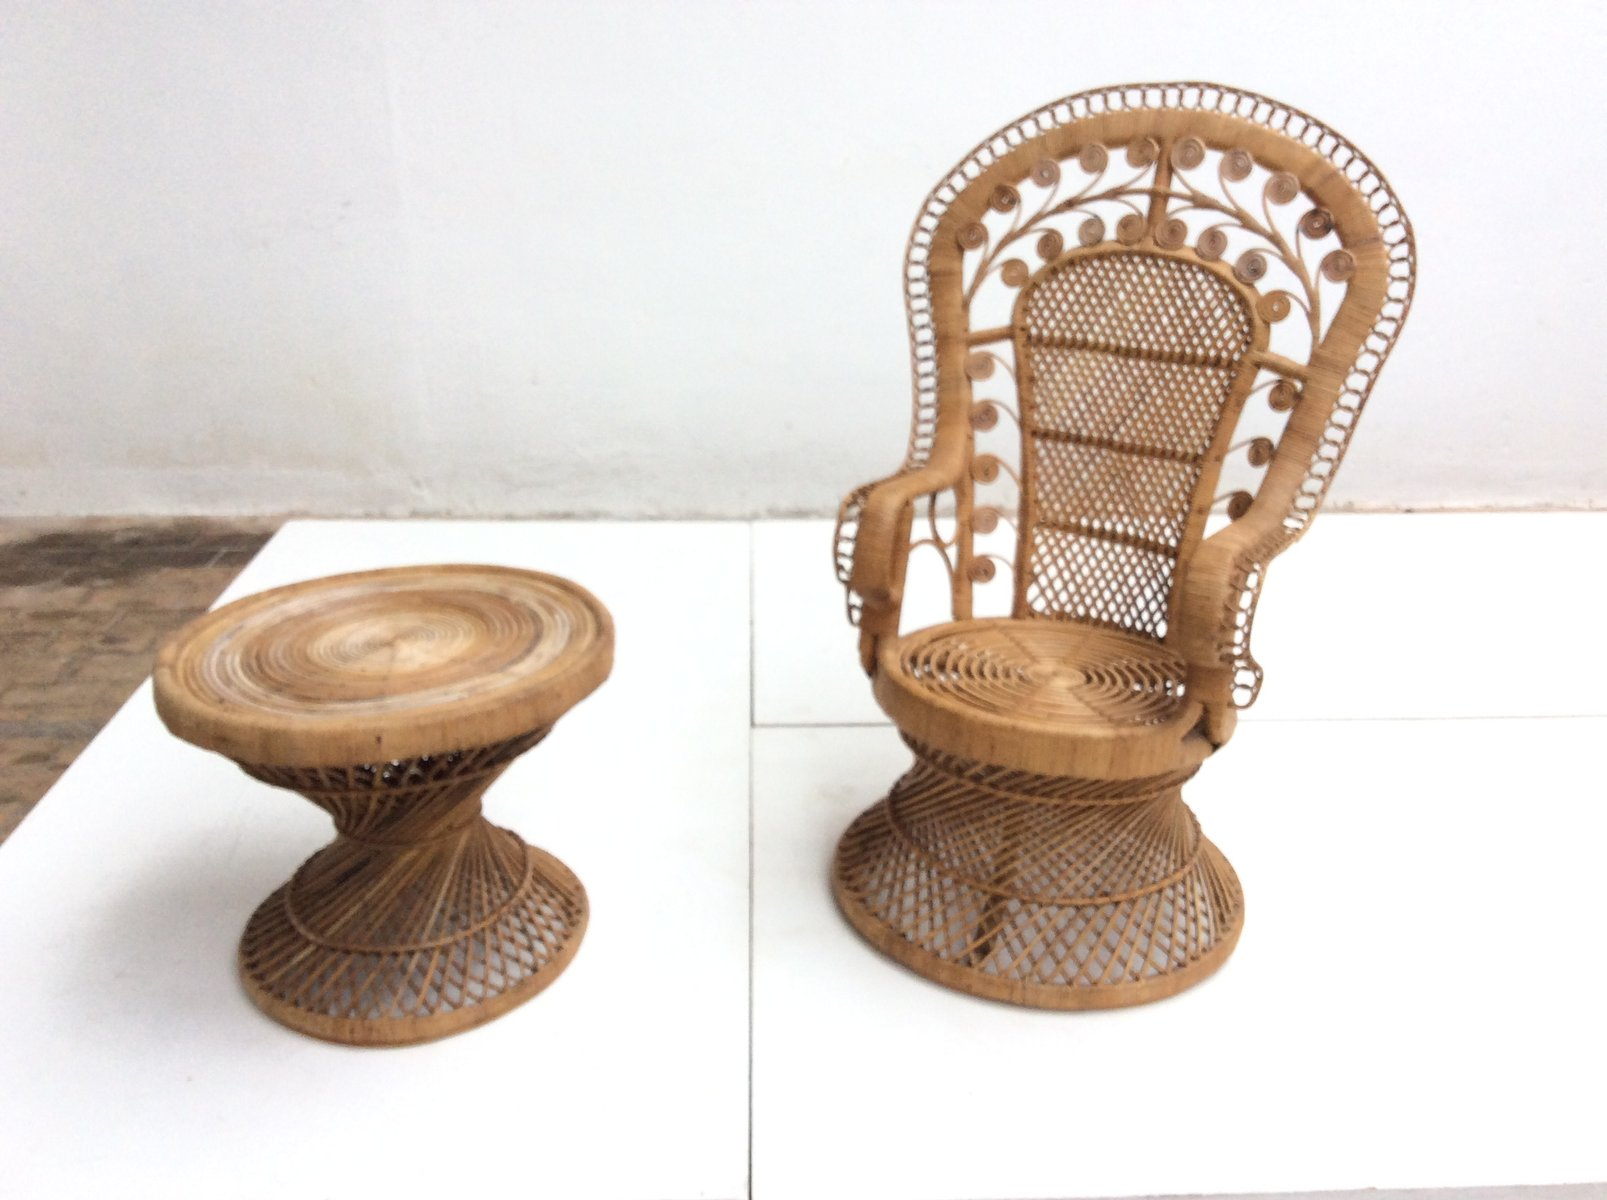 Vintage Indonesian Rattan Peacock Chair And Table, 1970s